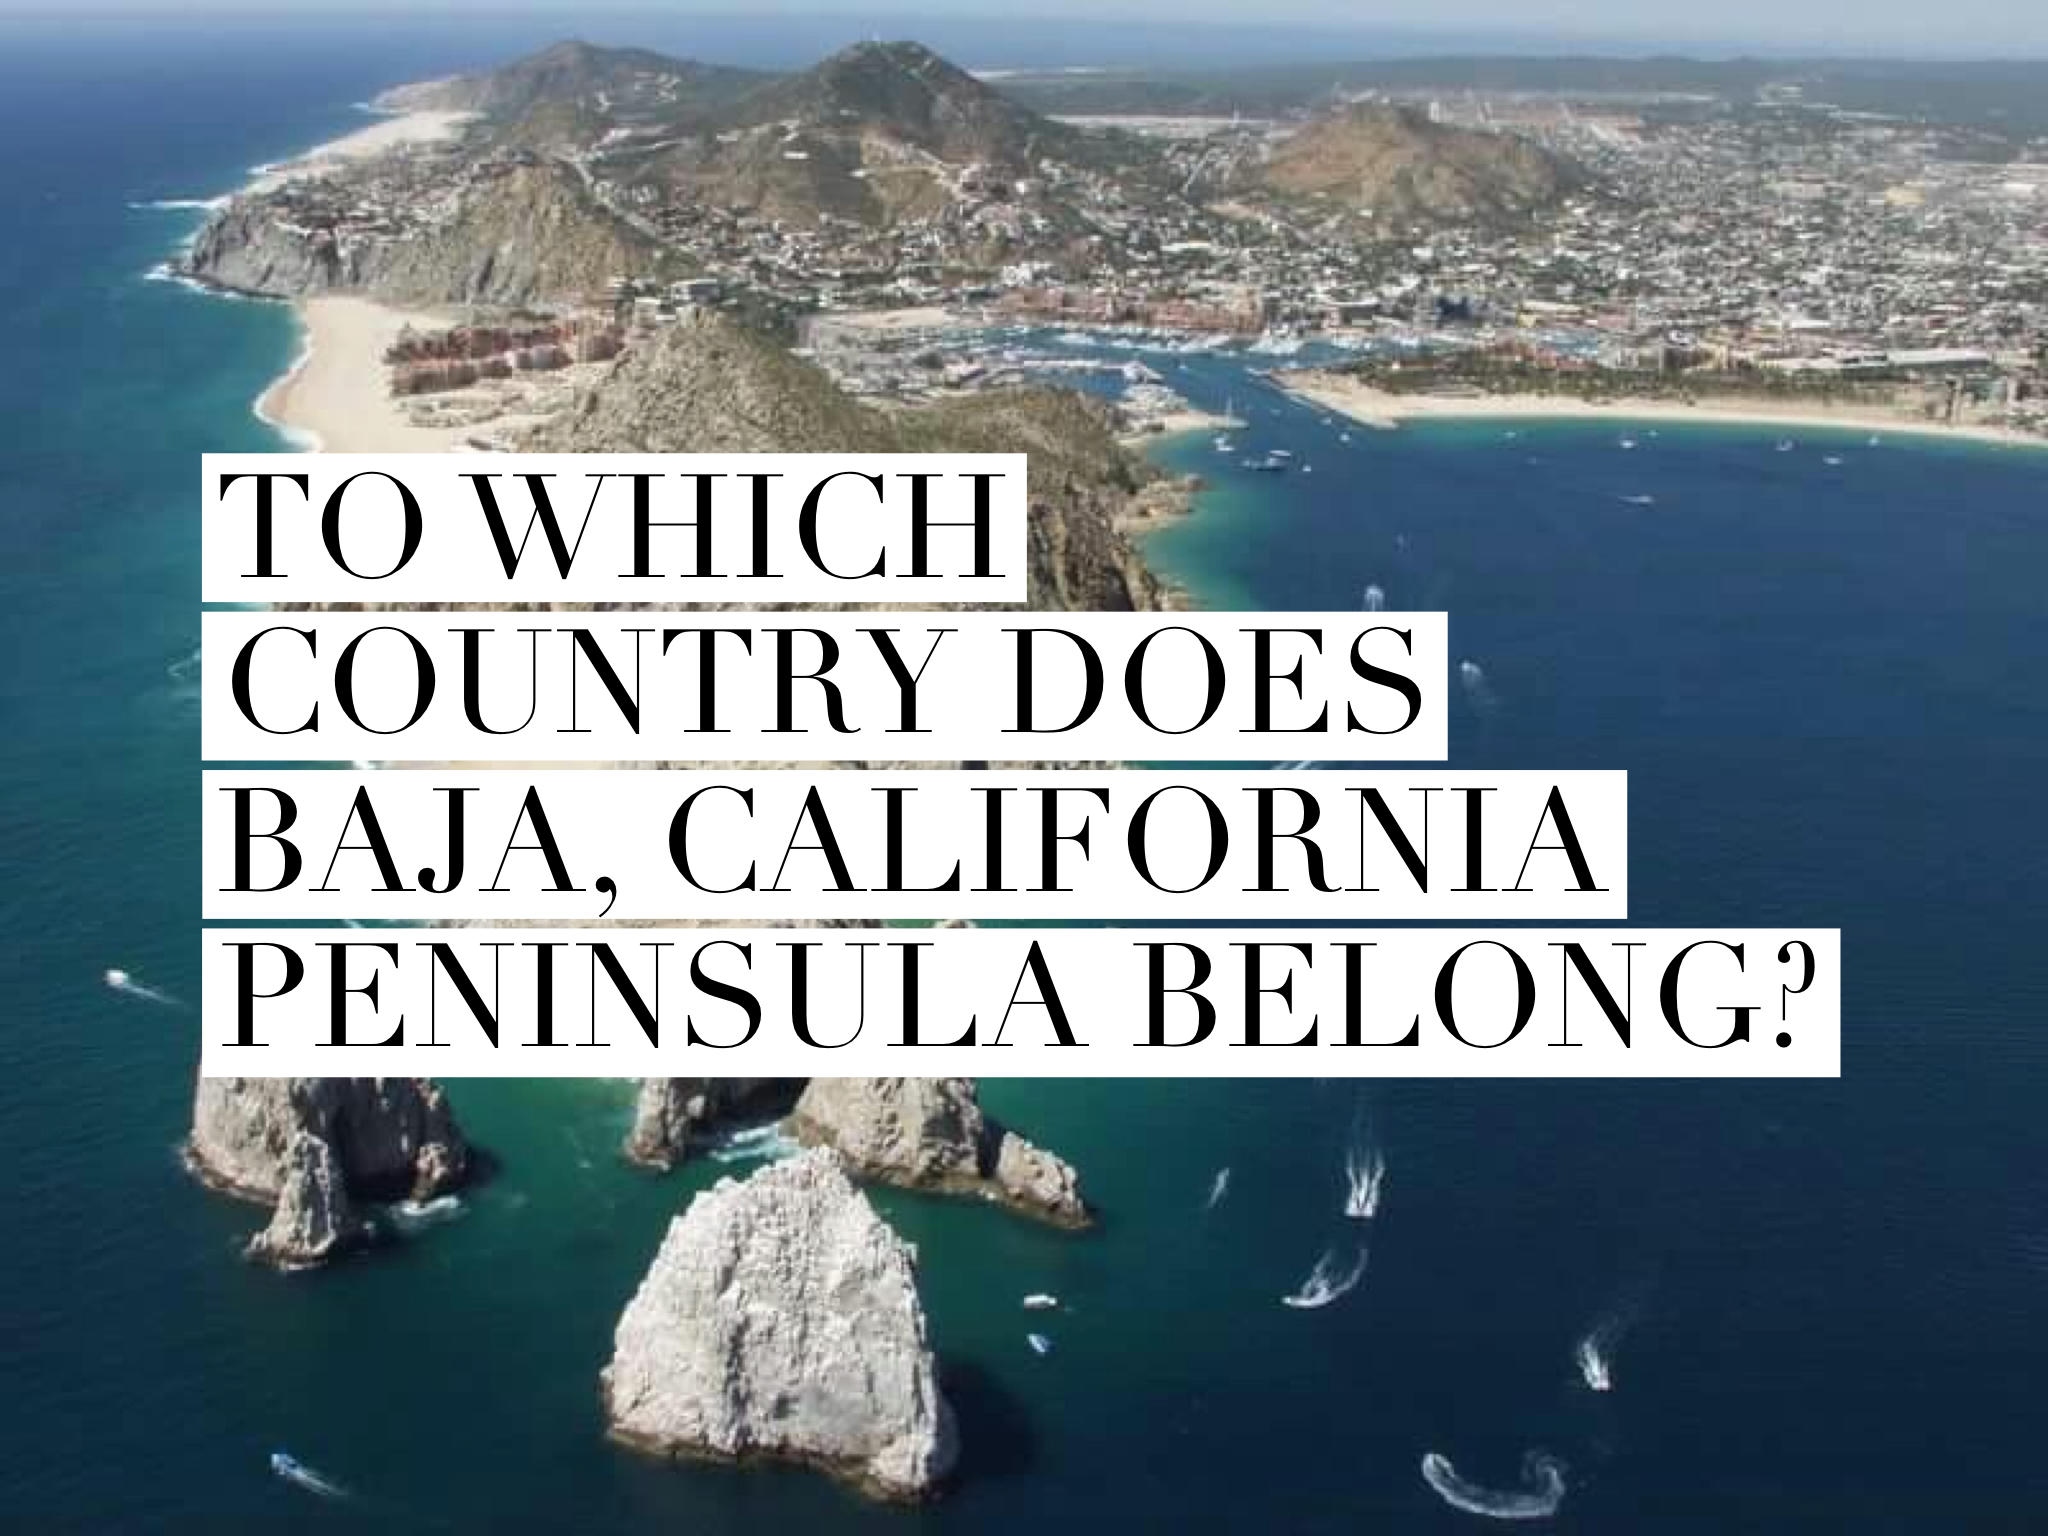 To which country does Baja, California peninsula belong?